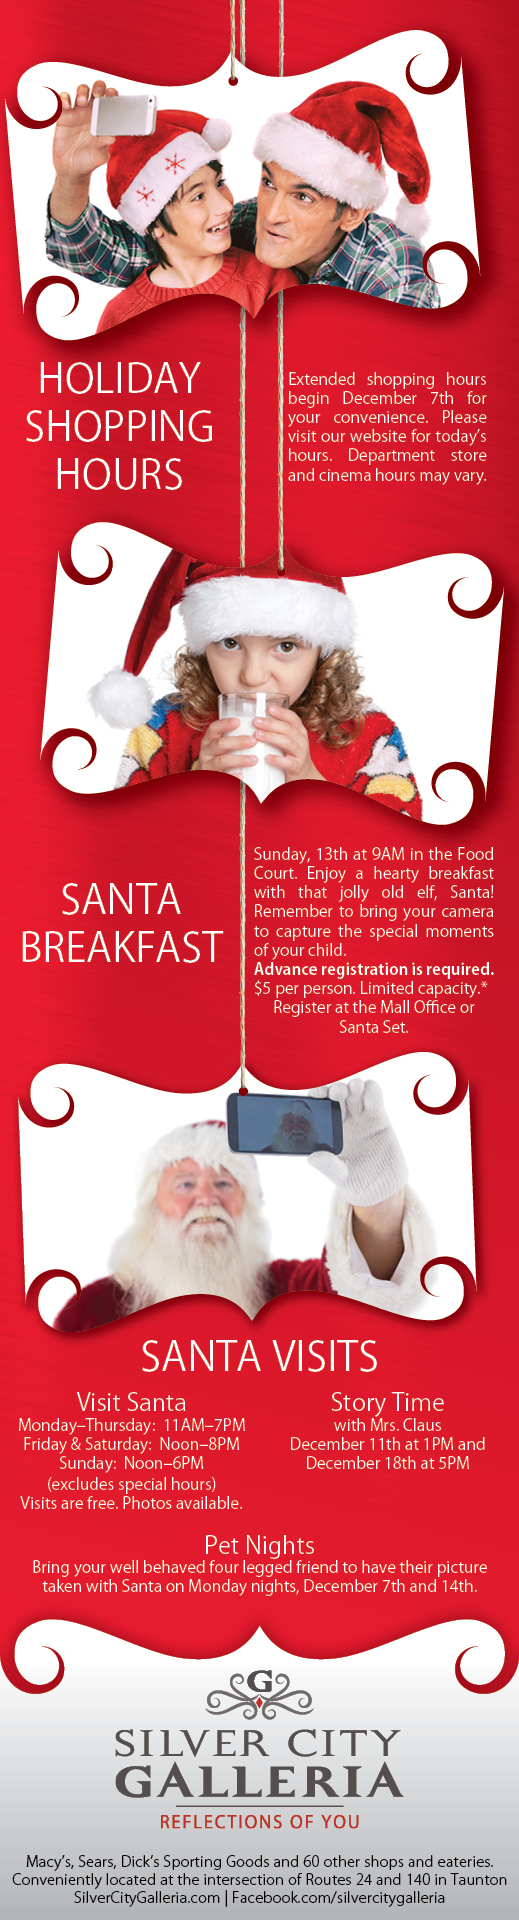 Holiday 1/2 Page Ad Design for Silver City Galleria by Cybergraph®